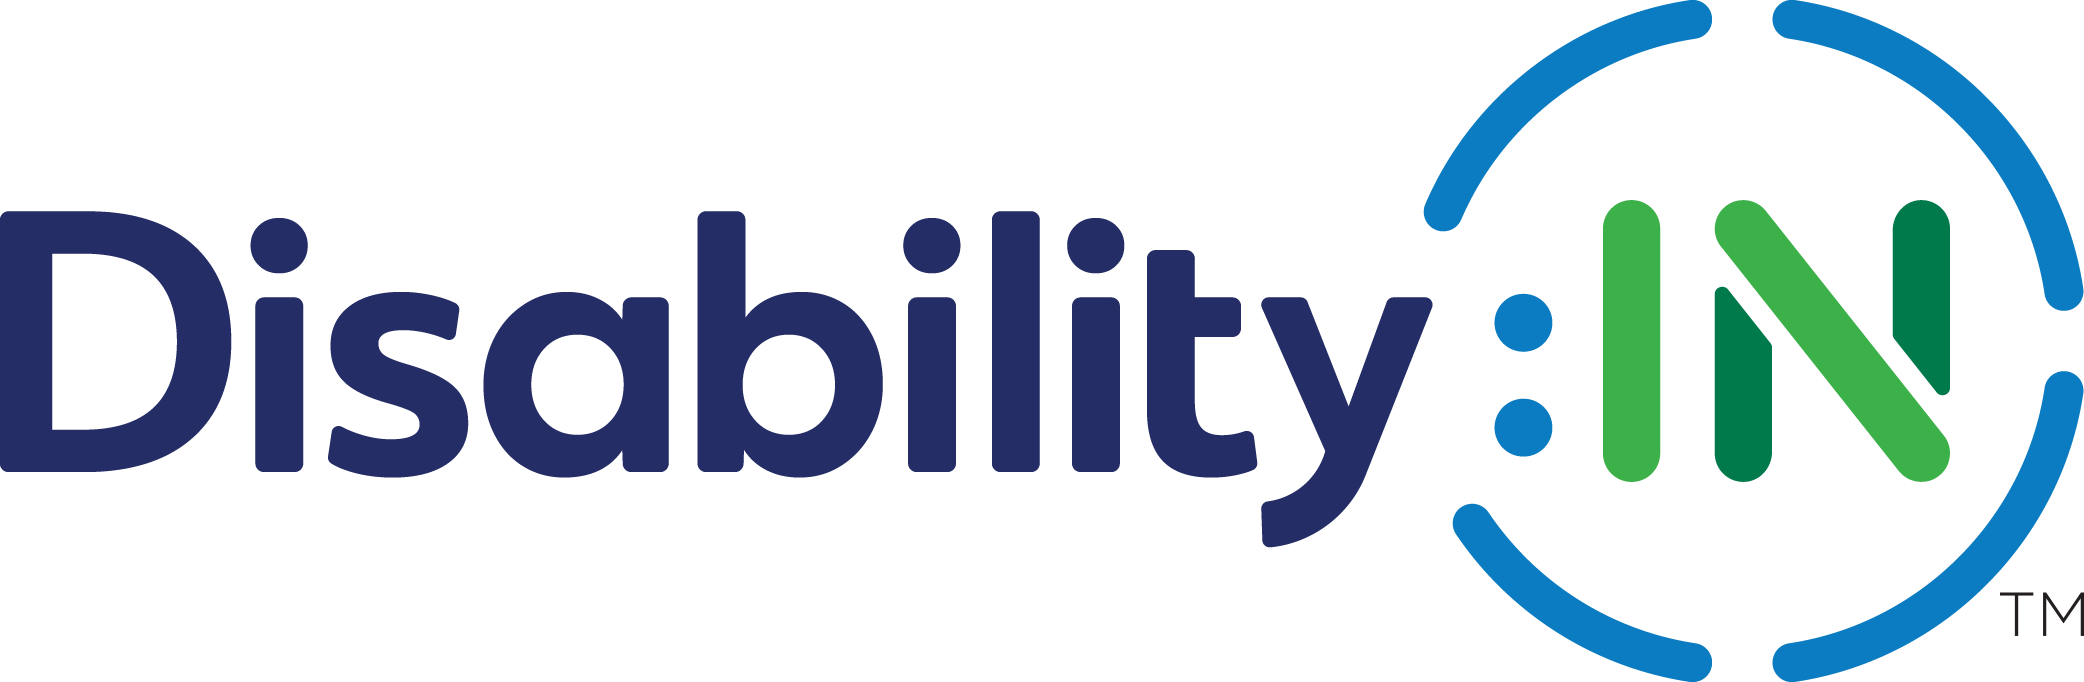 Disability:IN